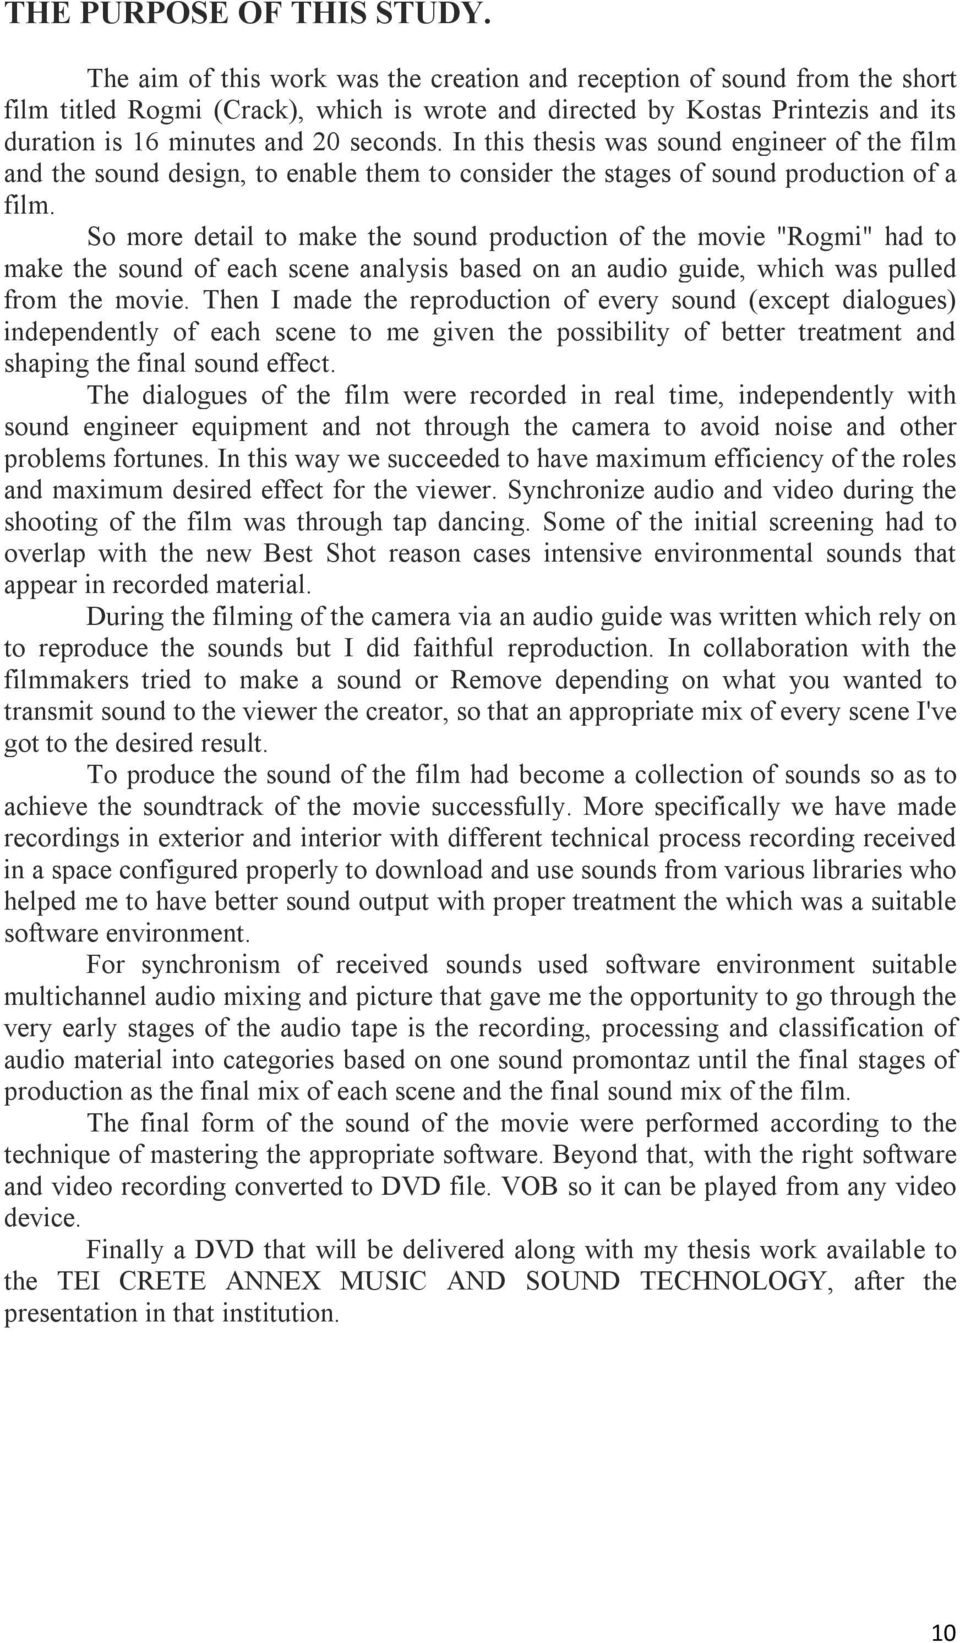 In this thesis was sound engineer of the film and the sound design, to enable them to consider the stages of sound production of a film.